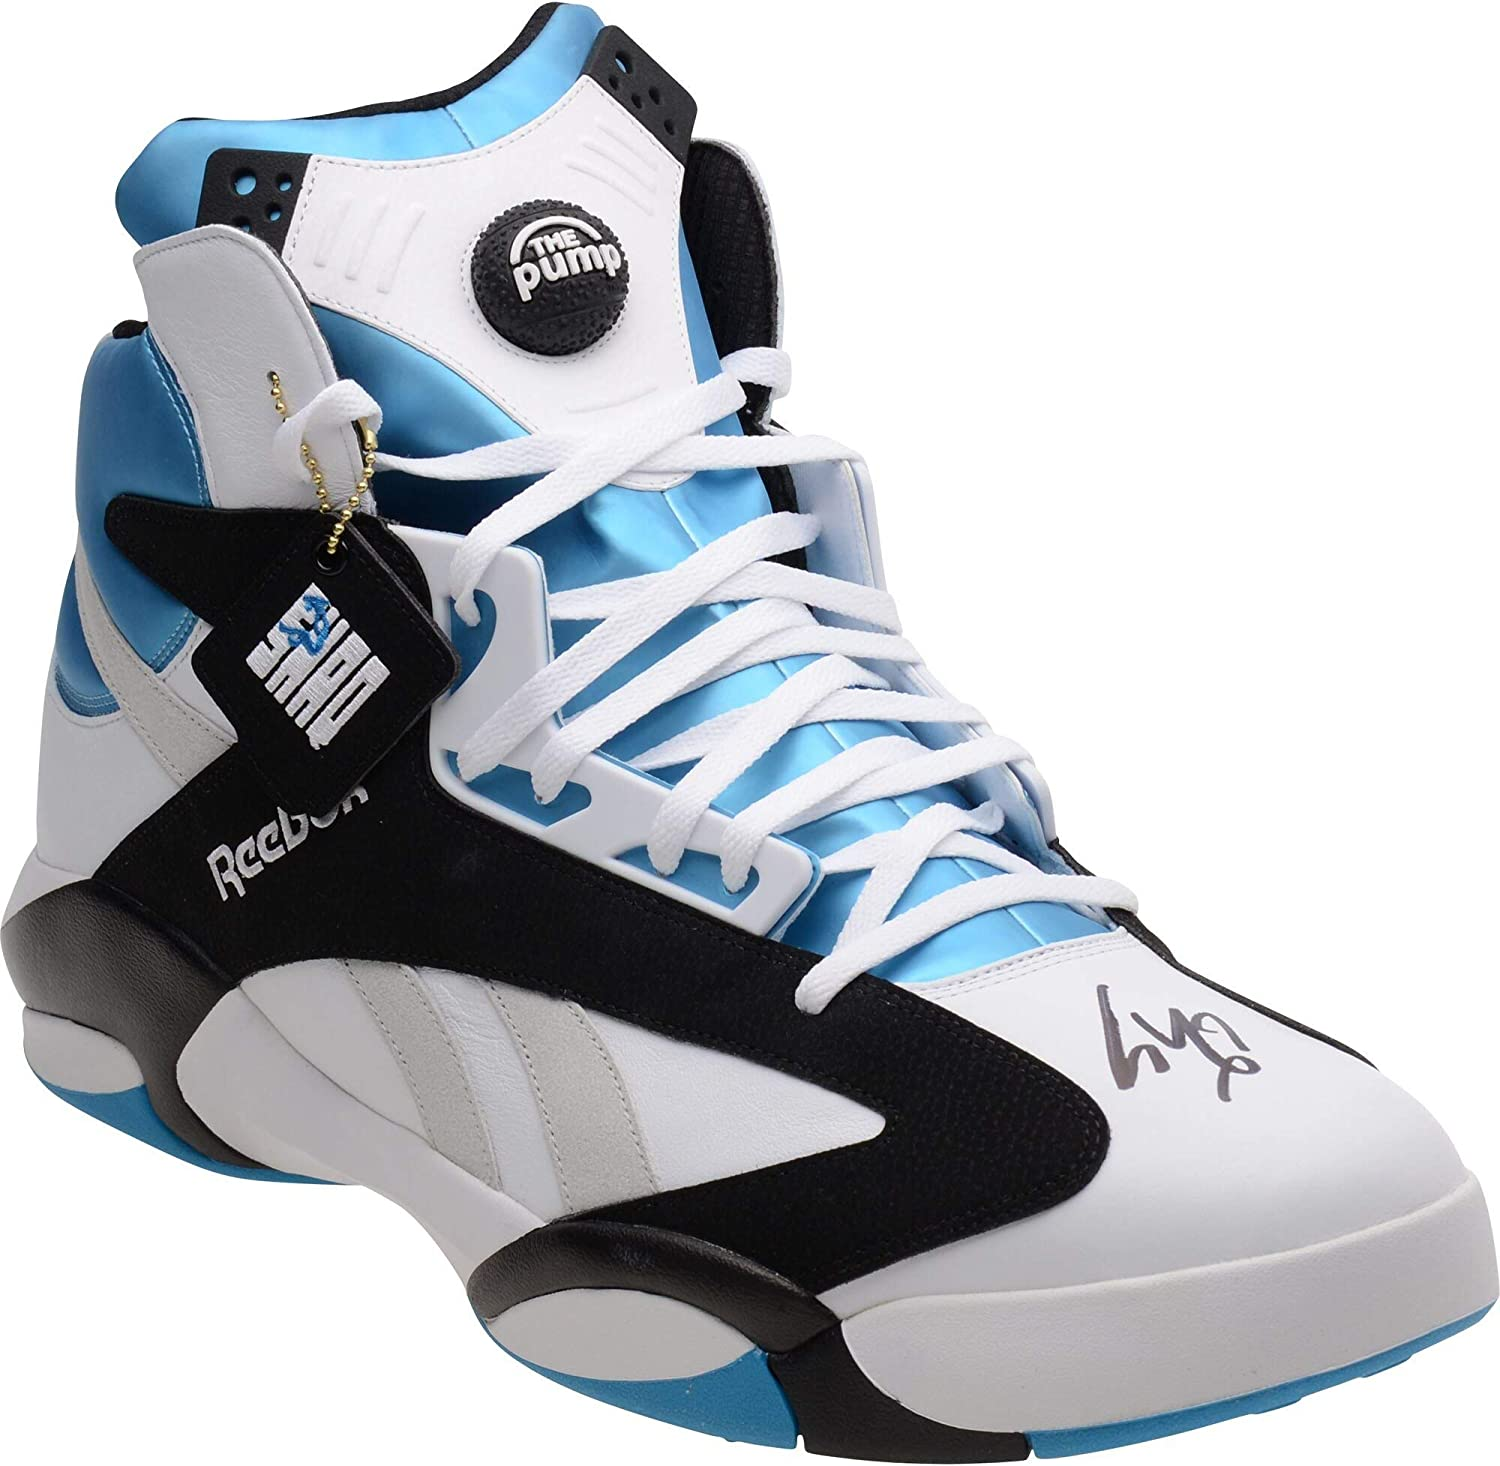 ozono Positivo Sastre  Shaquille O'Neal Autographed Reebok Size 22 Shoe at Amazon's Sports  Collectibles Store